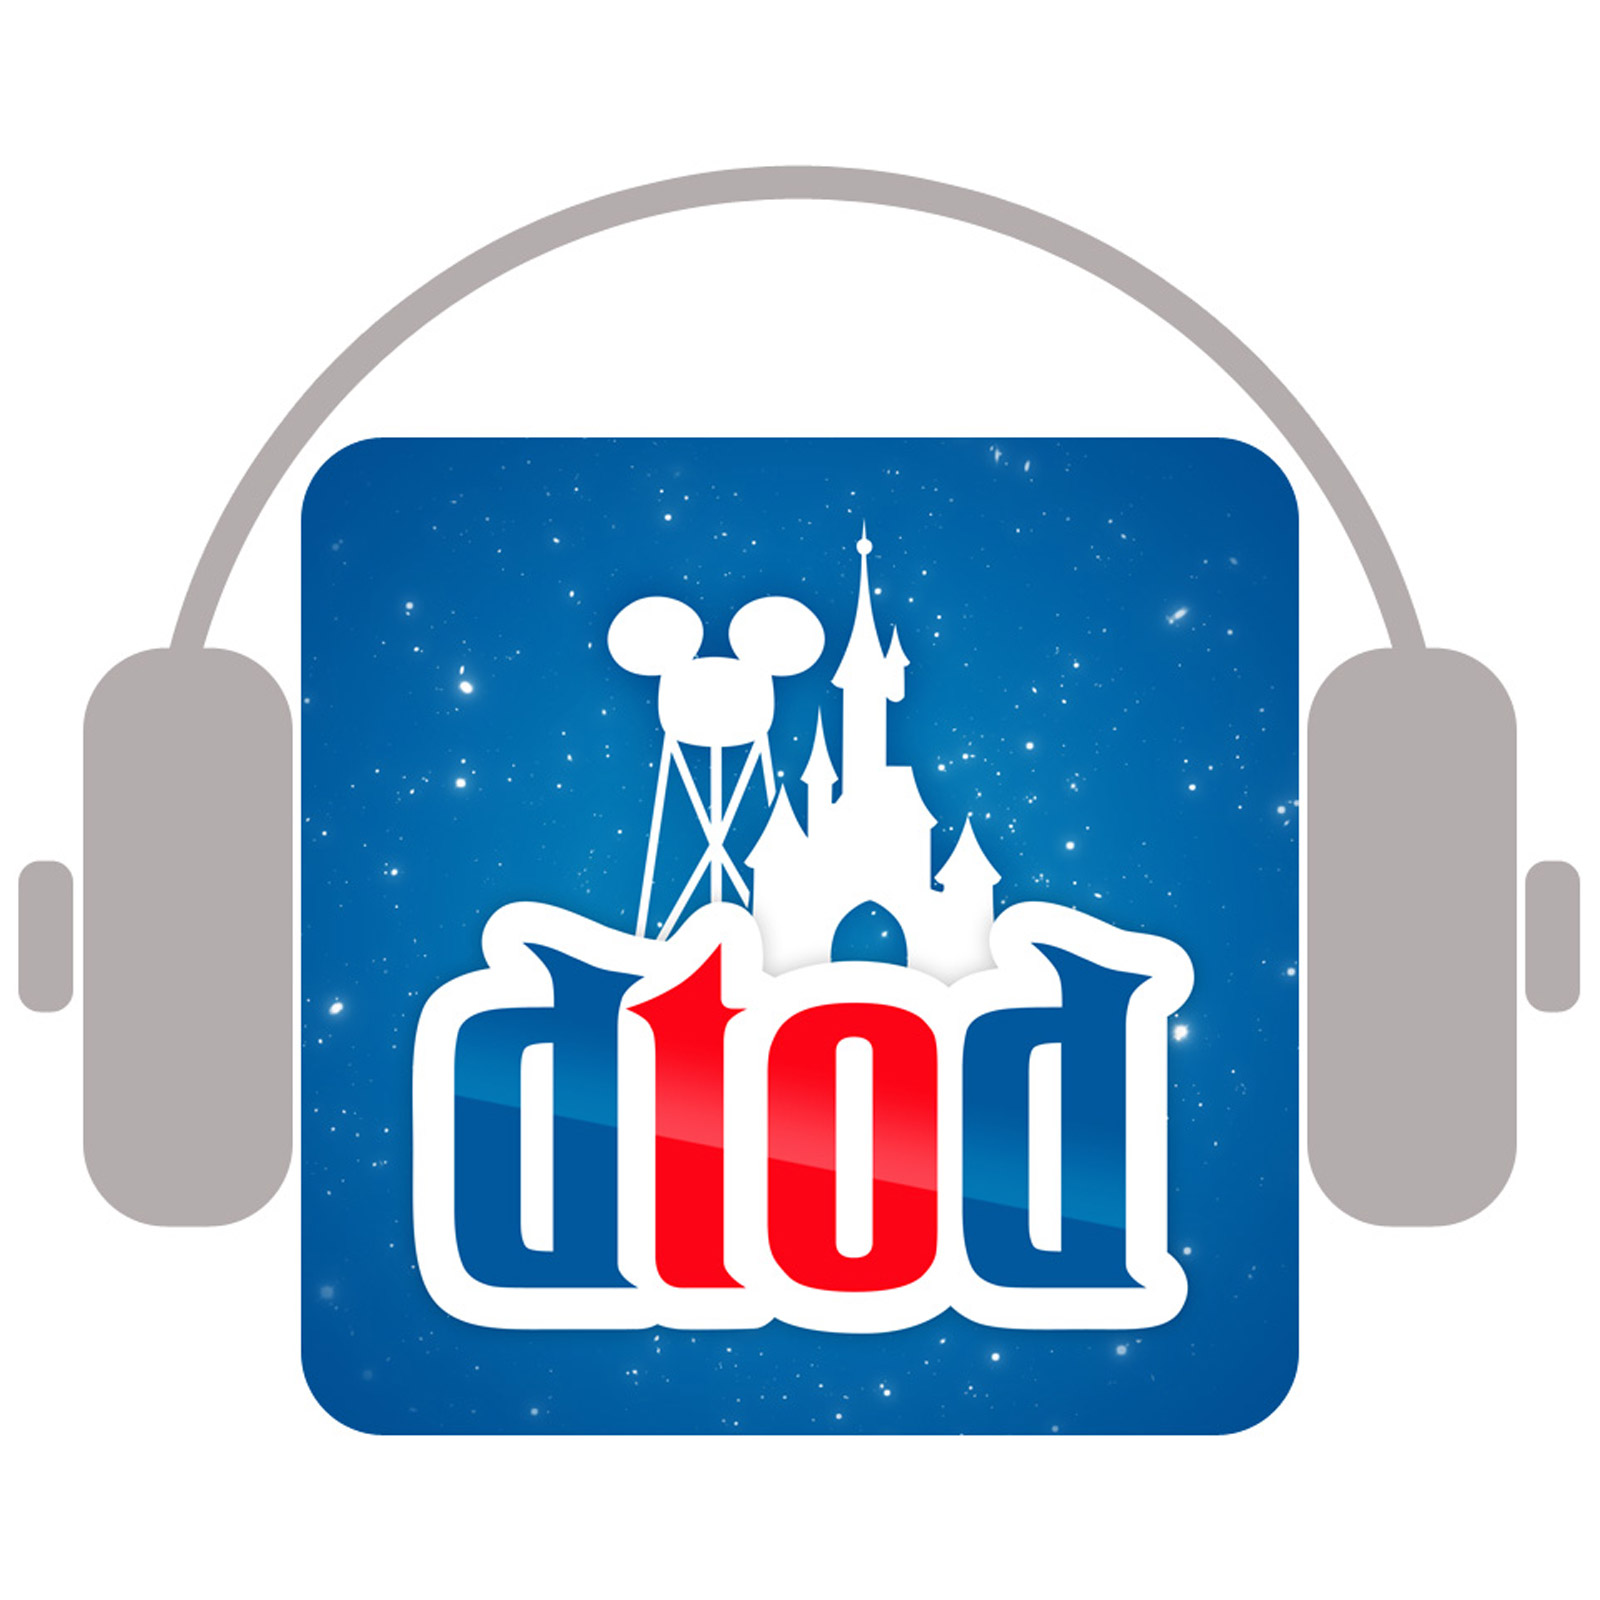 Episode 60: Tim Delaney Interview Part 2